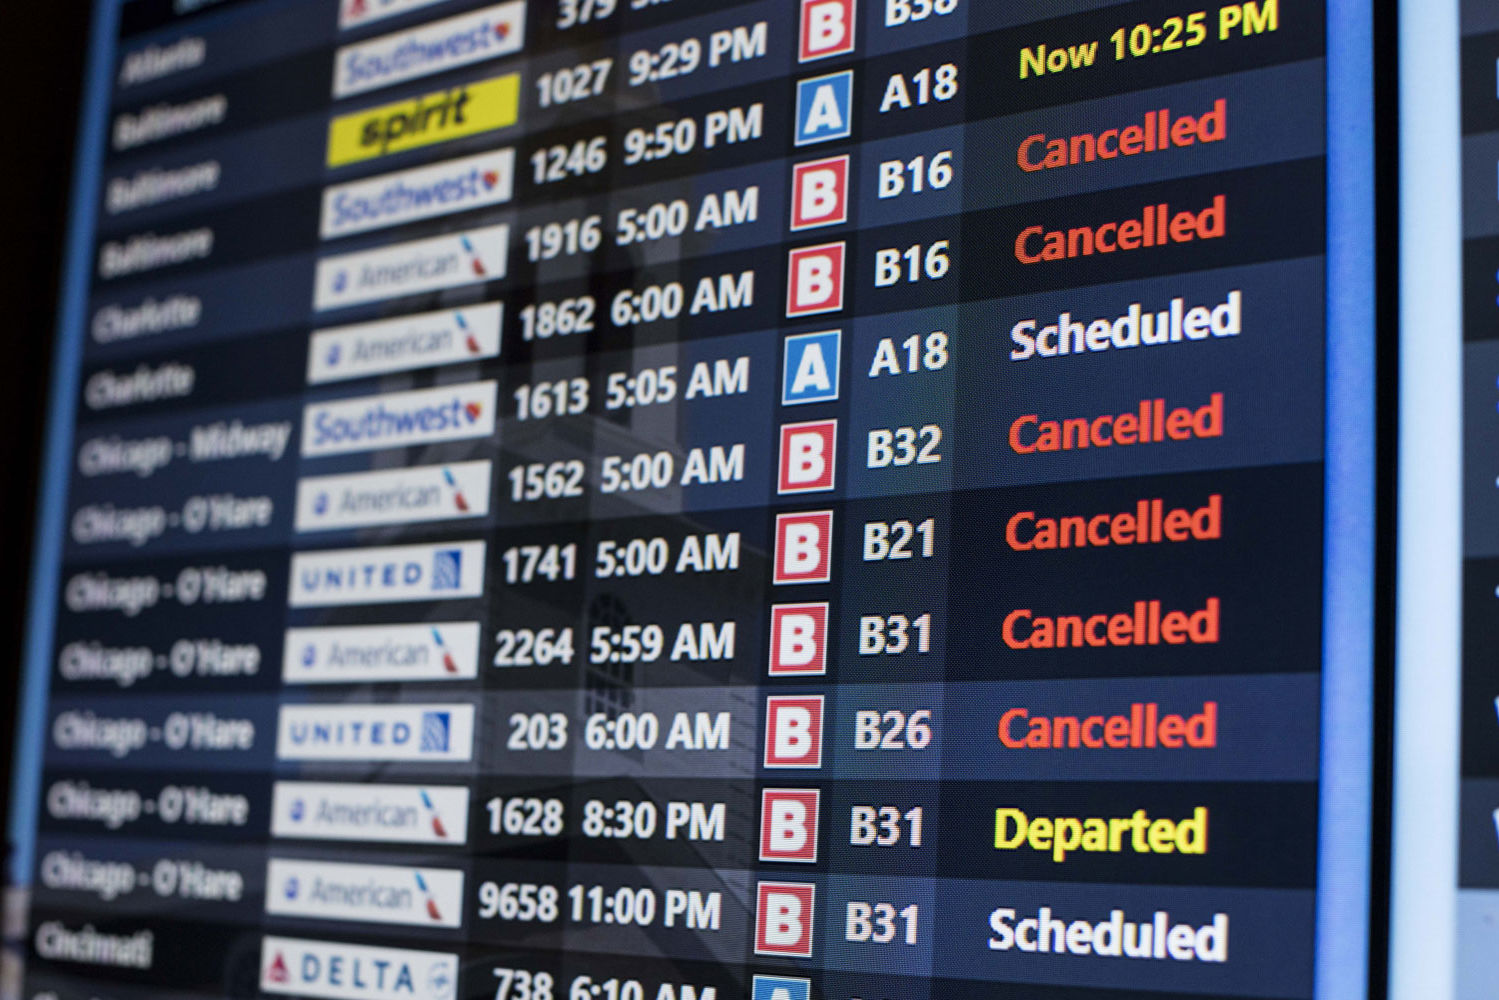 Flights Cancelled As Winter Storm Grayson Descends on the East Coast